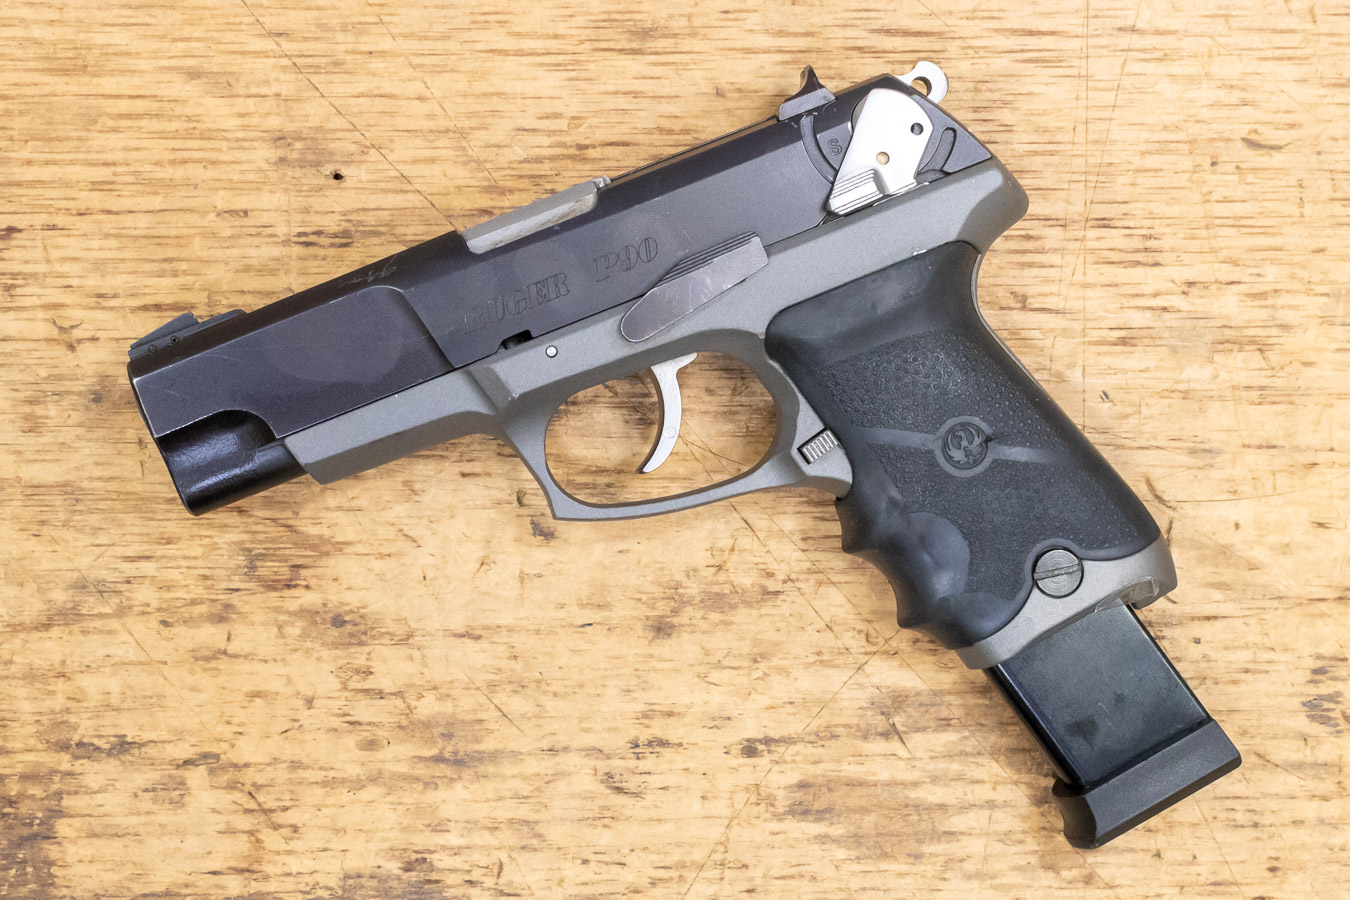 P90 45 ACP Used Pistol with Aftermarket Extended Magazine